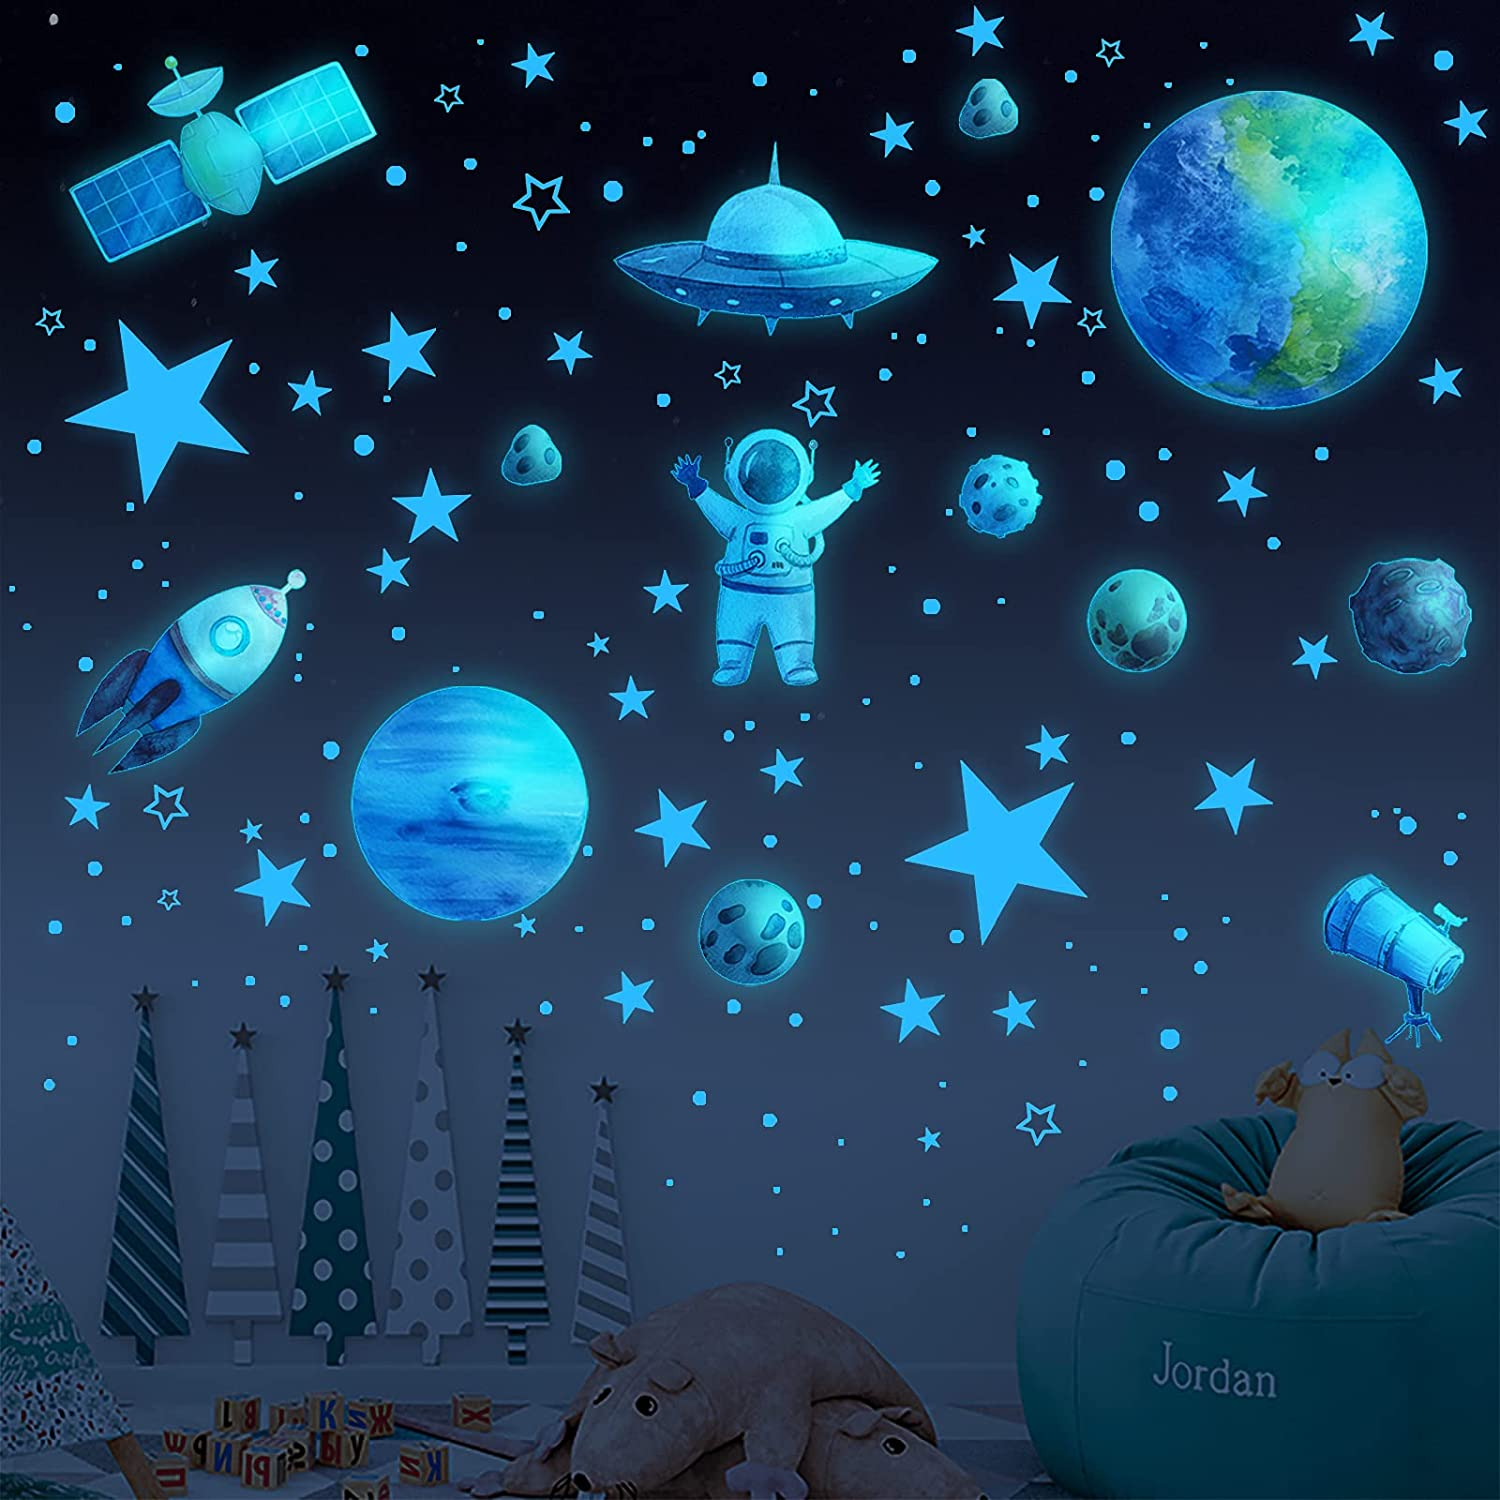 Glow in The Dark Stars for Ceiling,1008PCS Glow in The Dark Stars and Planet Wall Stickers,Planet Wall Decals,Bright Solar System Wall Stickers for Kids, lanets Spaceship Stars Decal Decor